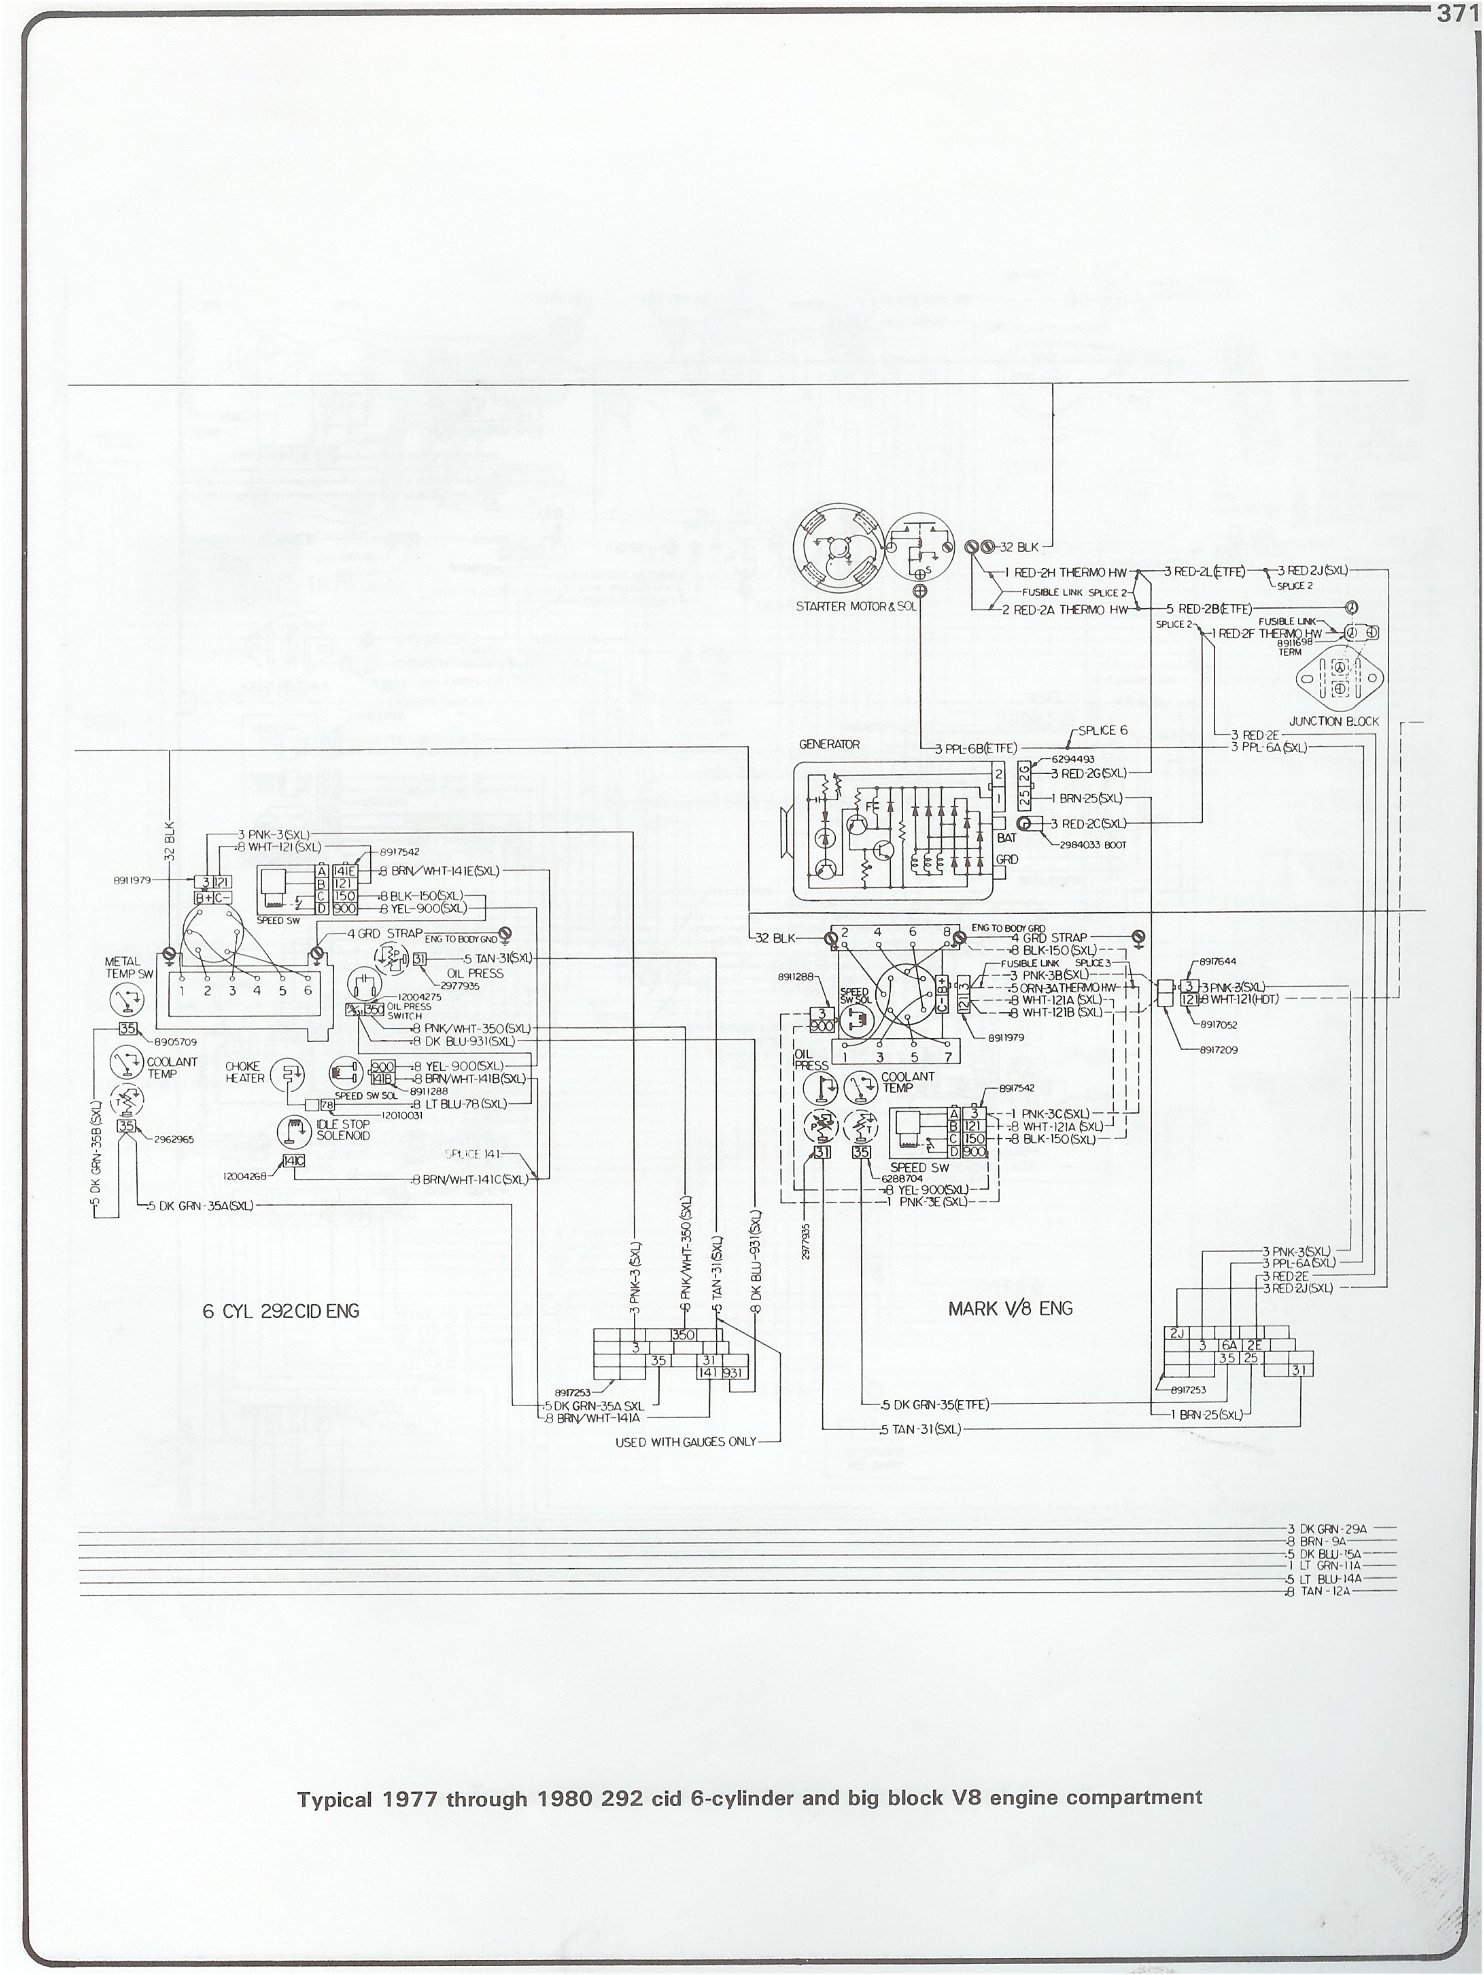 Chevy 350 5 7 Tbi Engine Diagram On Chevy 350 V8 Engine Diagram